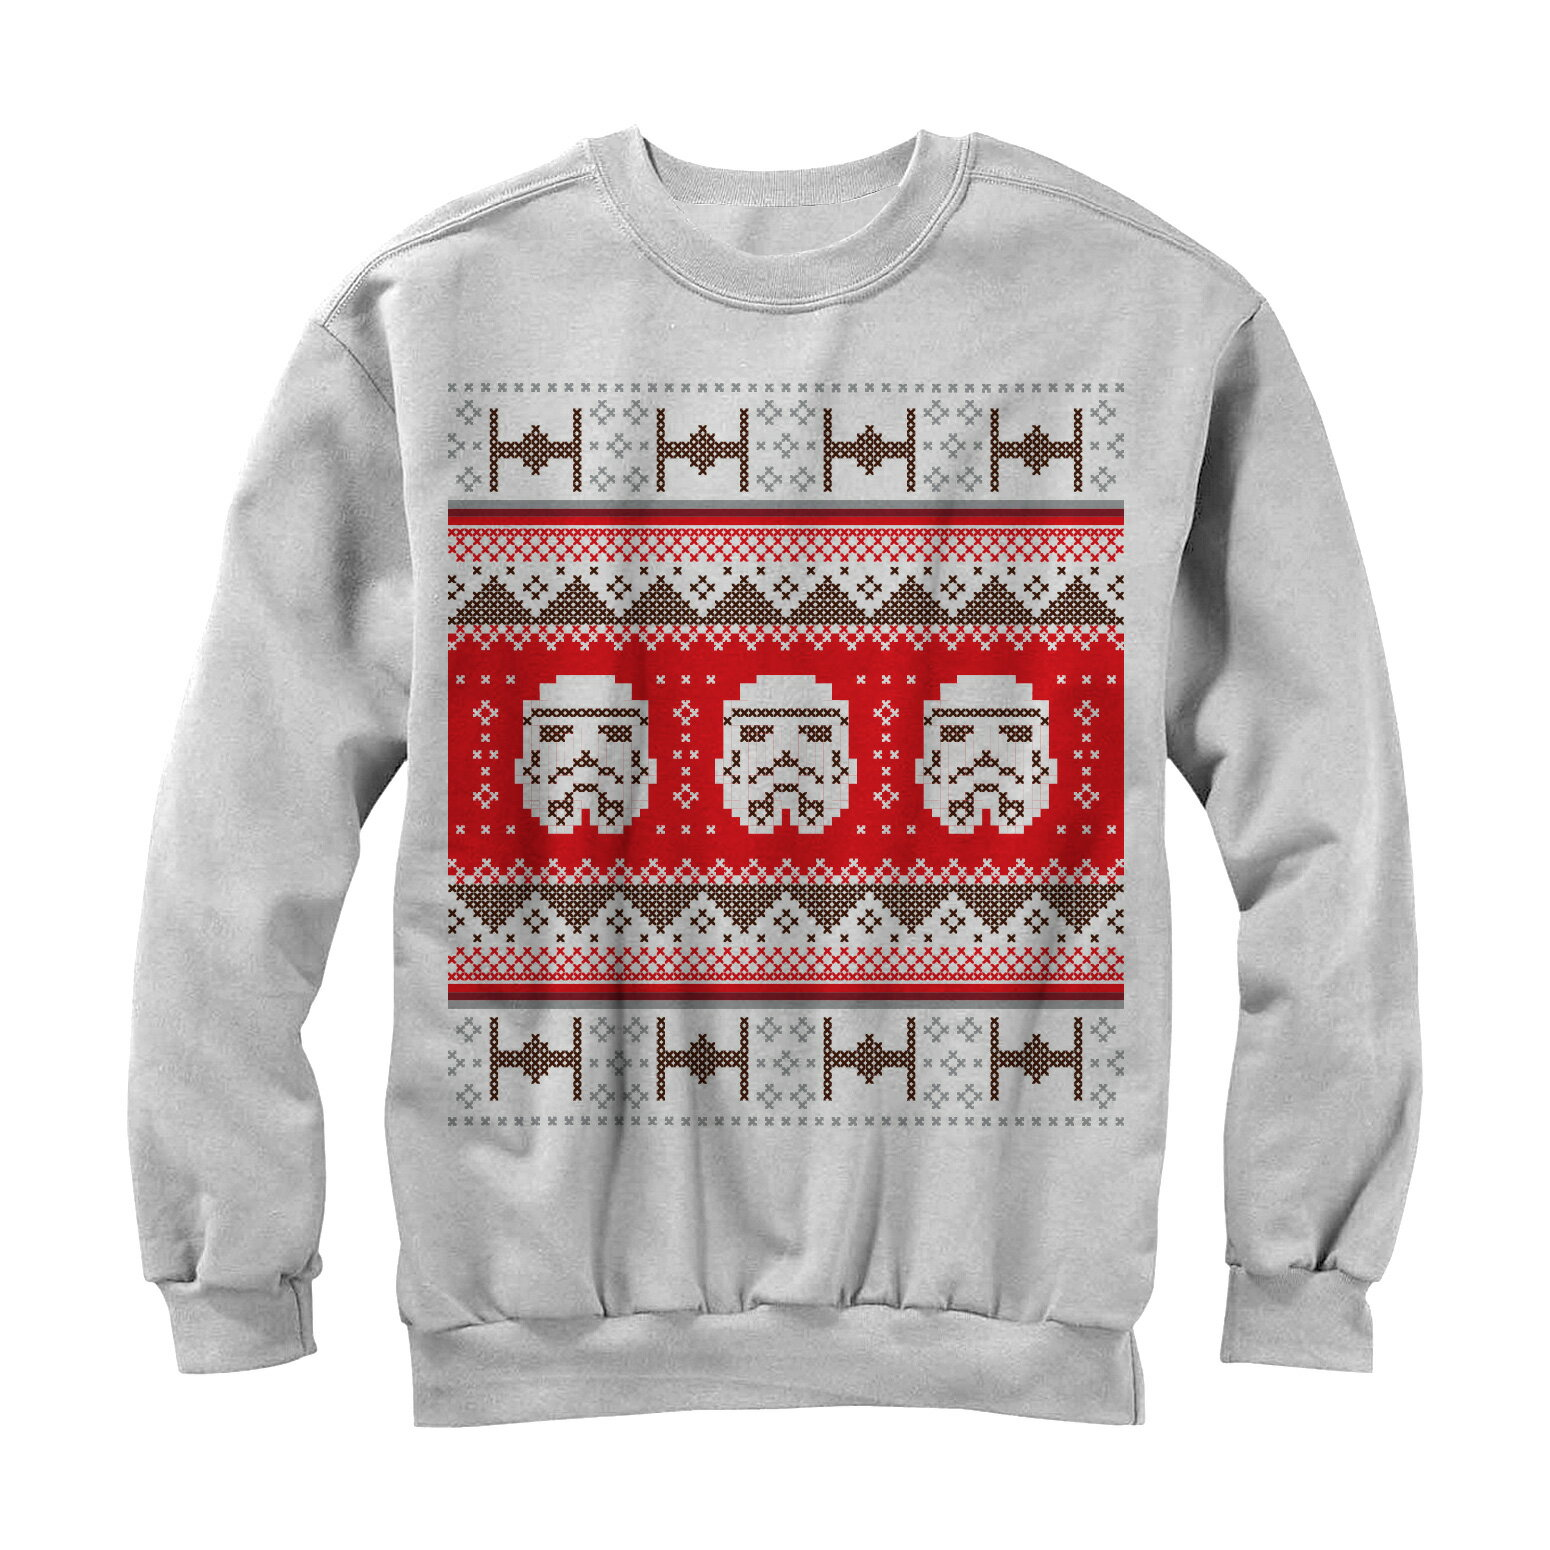 be6fcca558f FifthSun  Star Wars Stormtrooper Ugly Christmas Sweater Mens Graphic ...